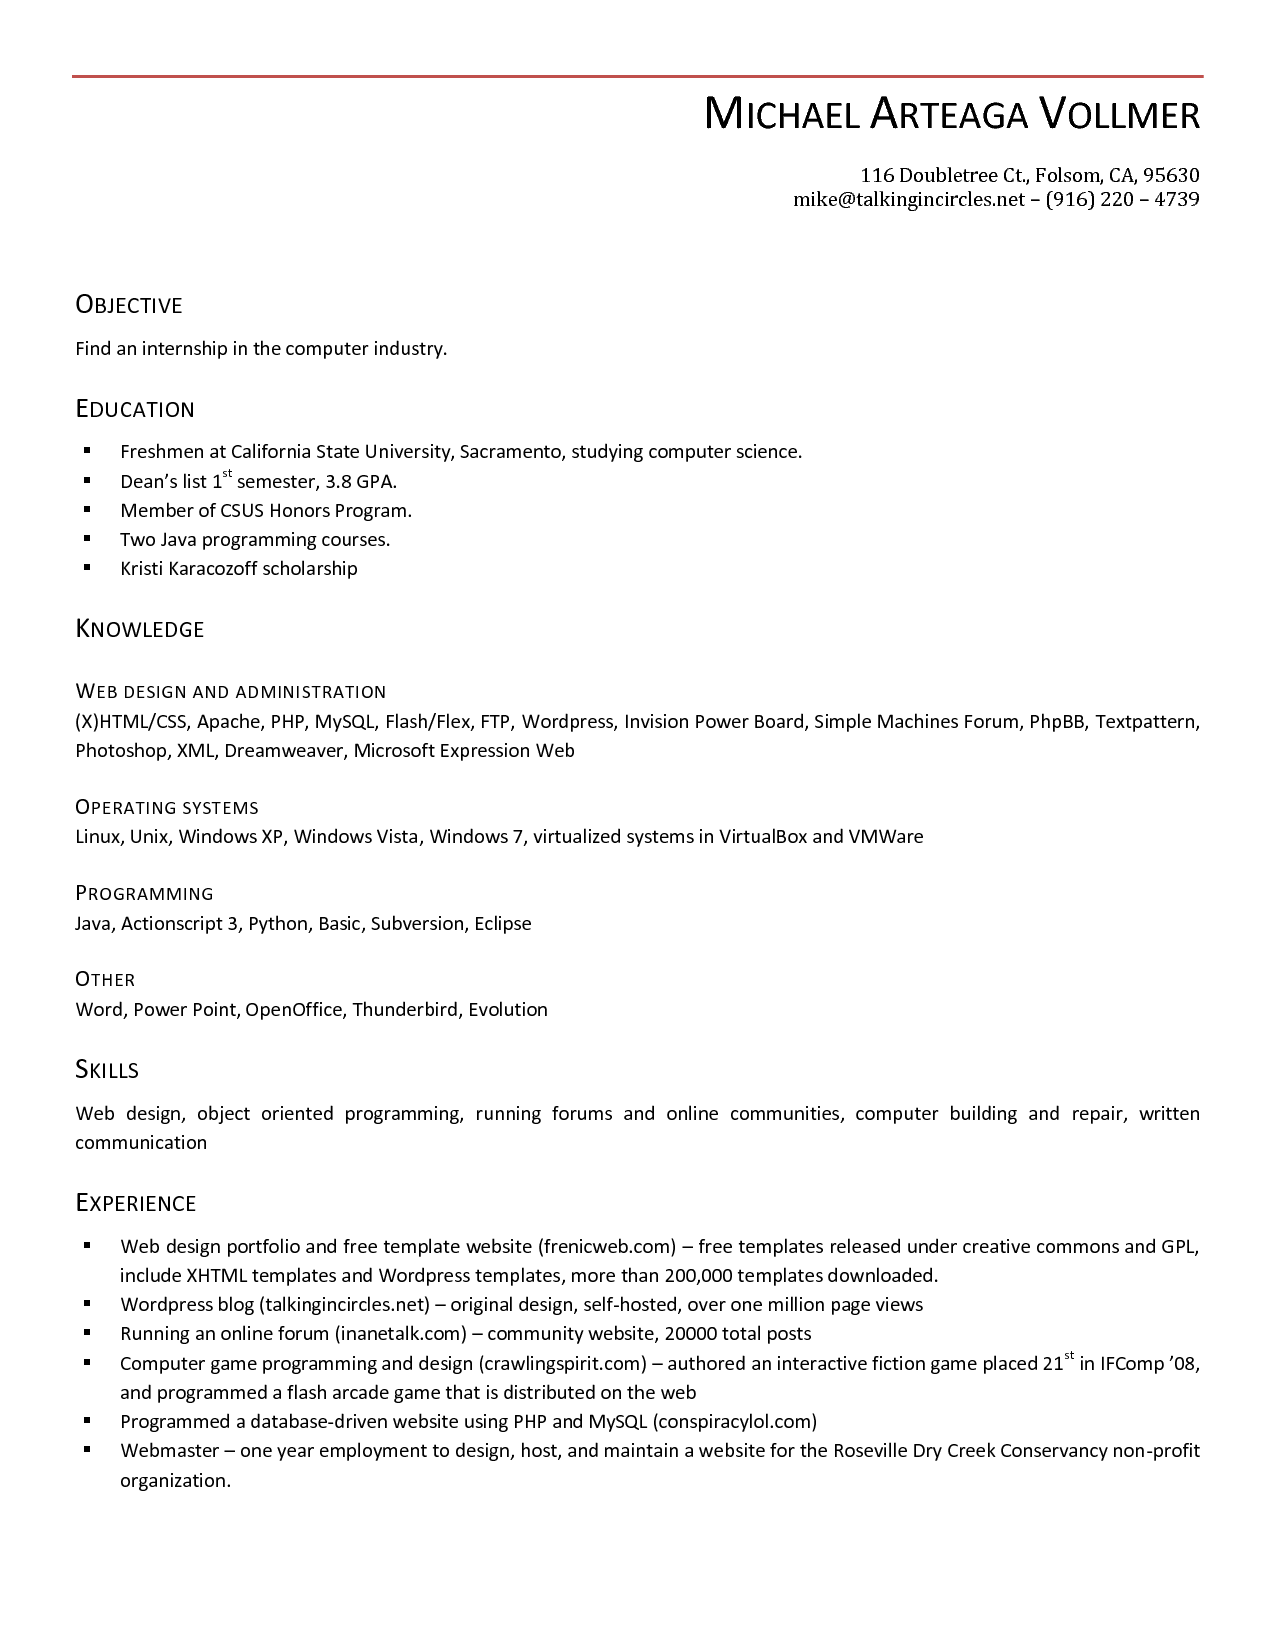 open office resume templates free download - Open Office Resume Templates Free Download